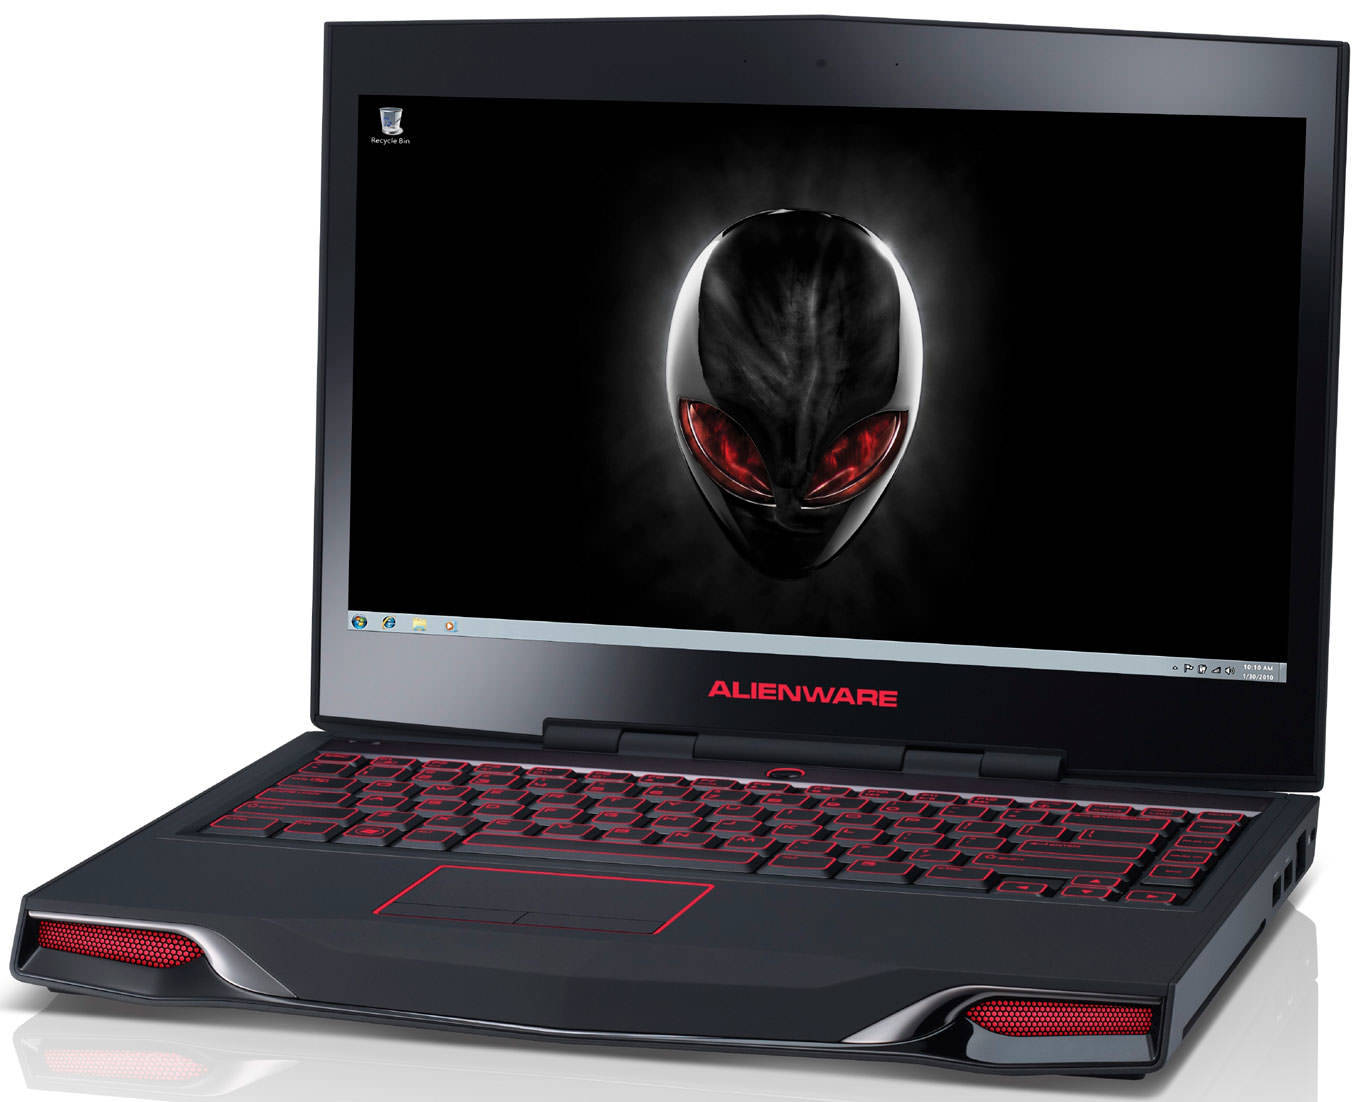 Compare Dell Alienware M14X Laptop vs Dell Alienware M14X R2 Laptop